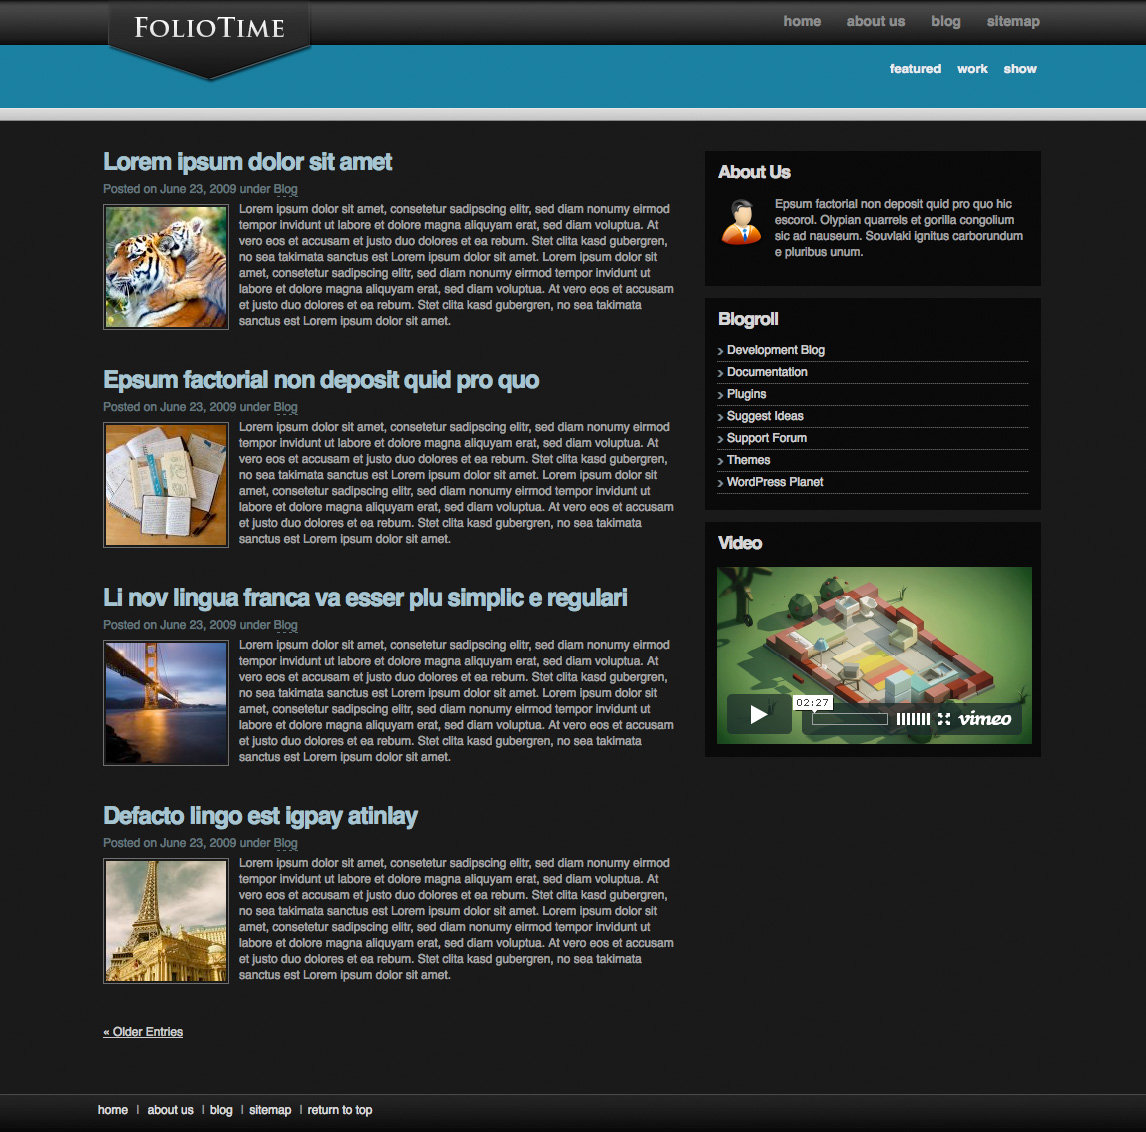 FolioTime | Wordpress showcase and blog - Sample view of the blog archive